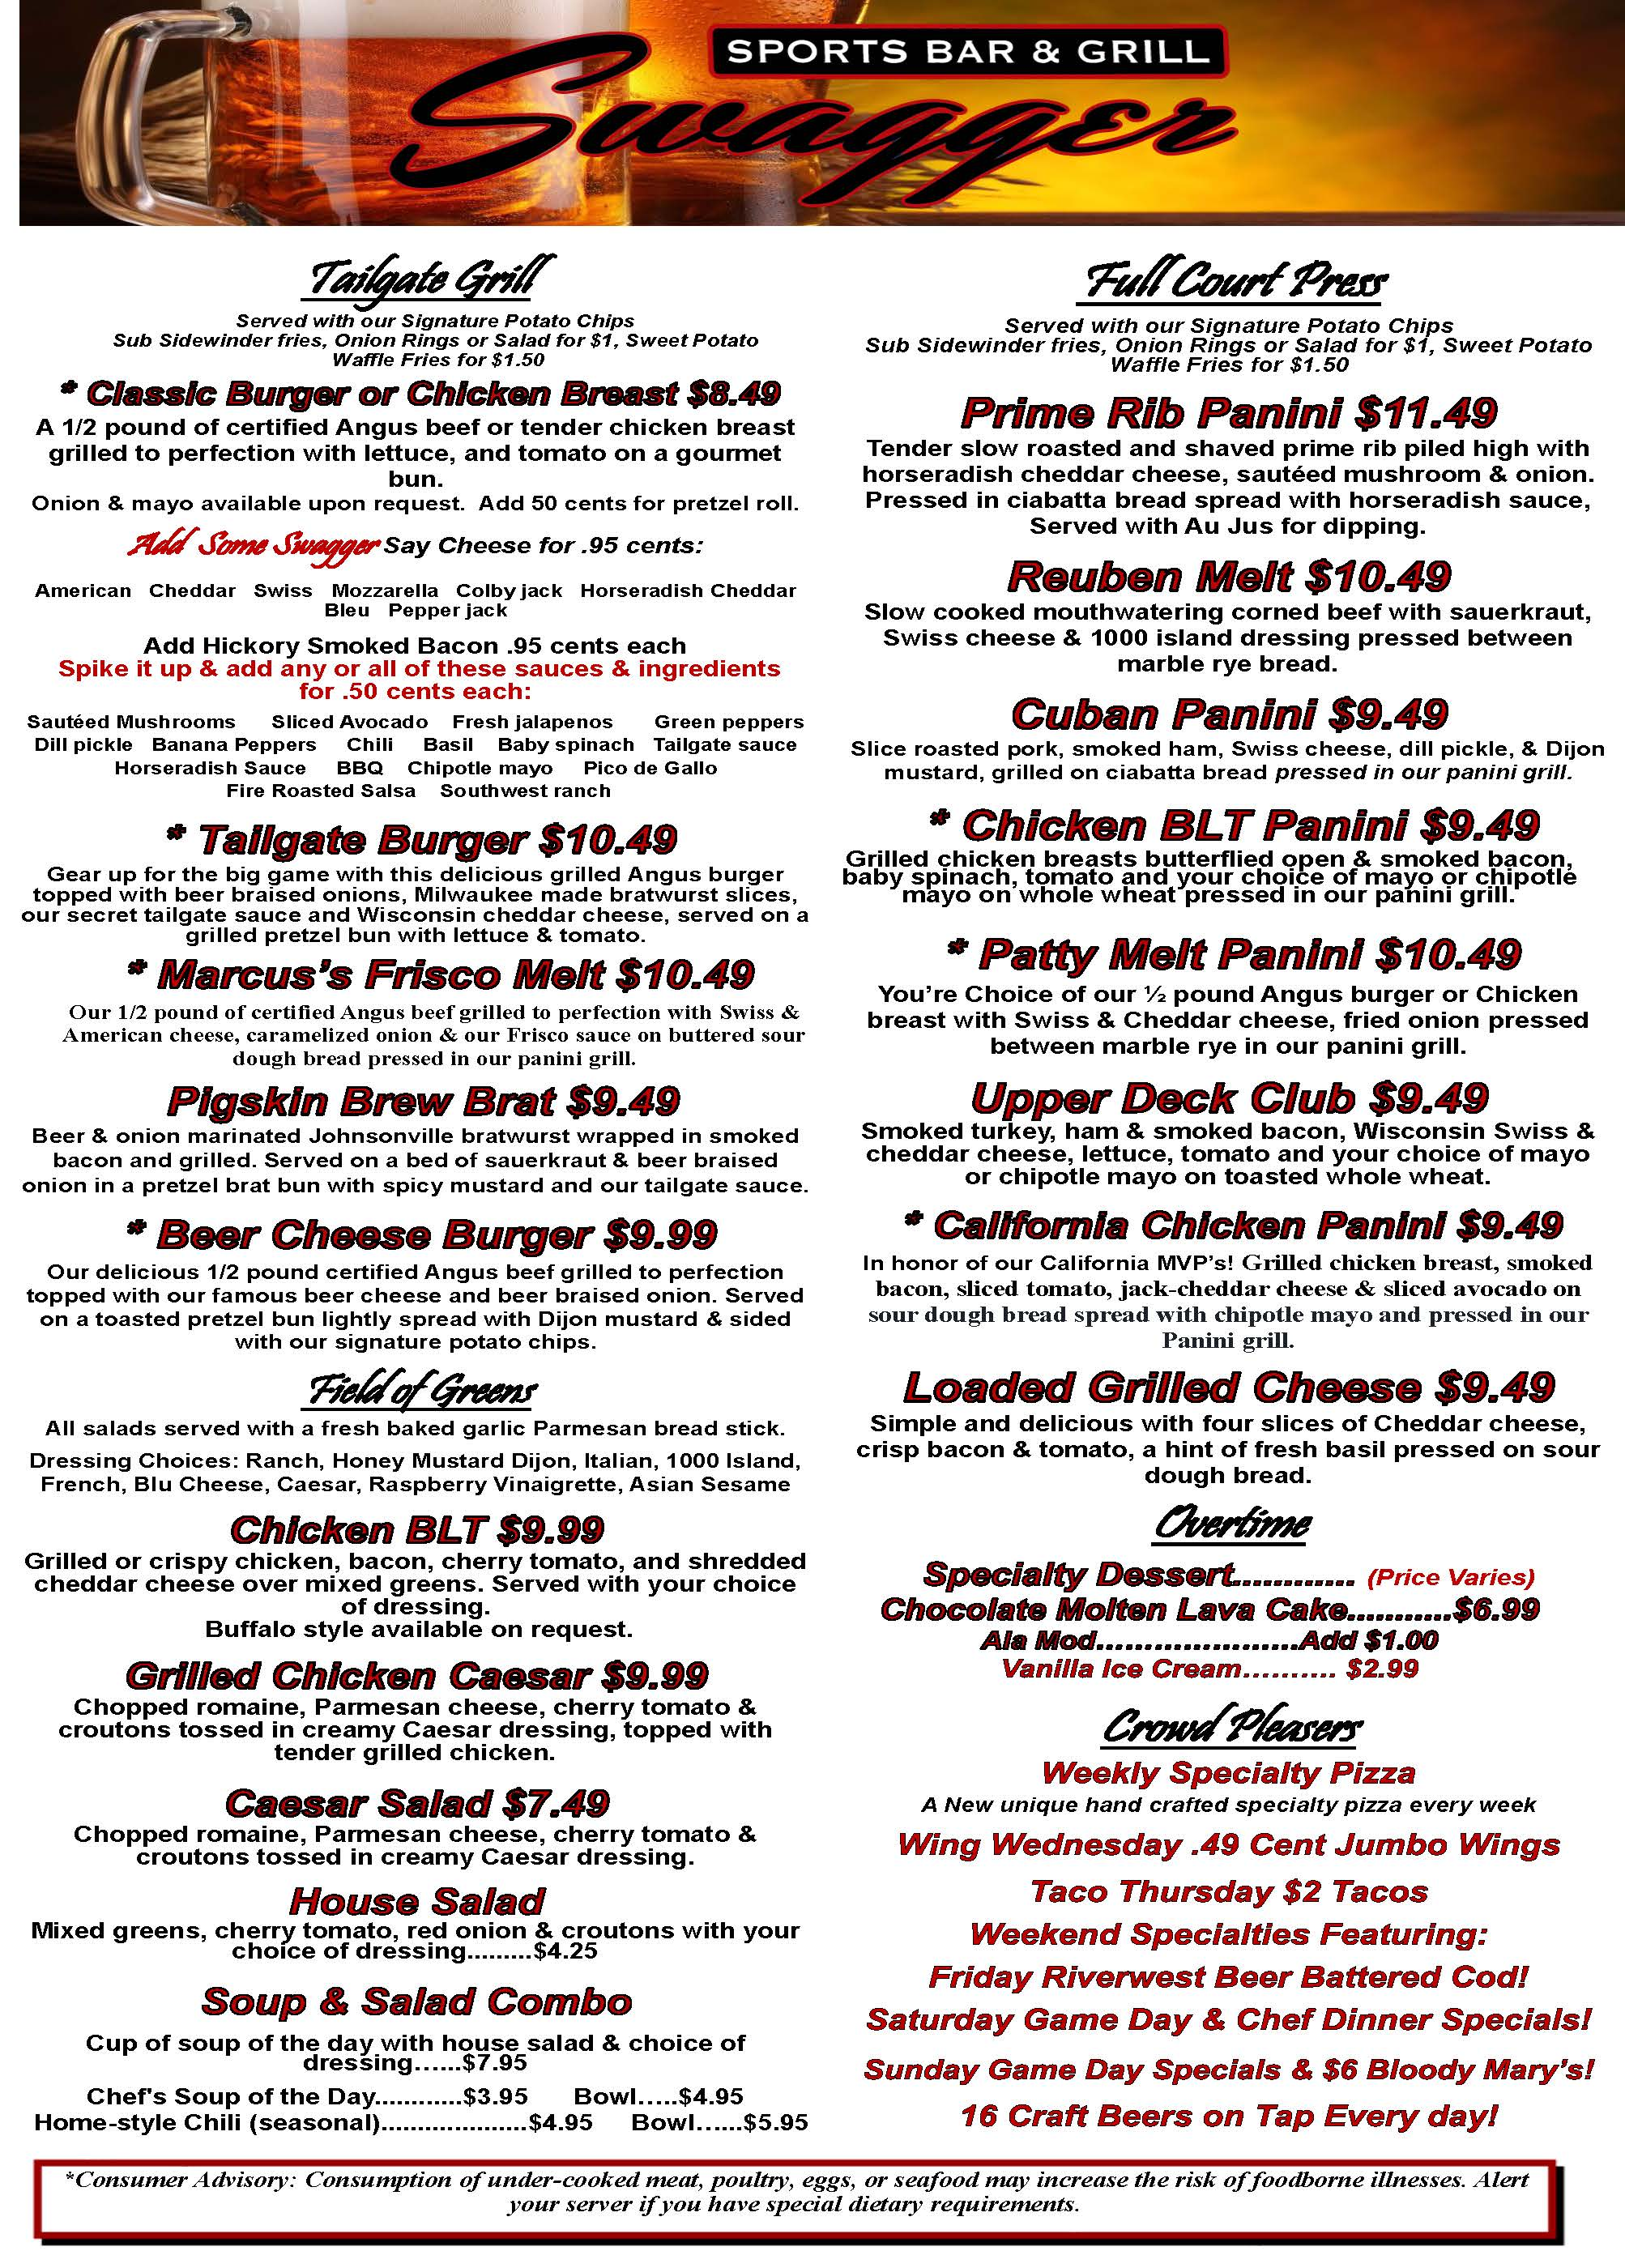 Root River Center Swagger Sports Bar Food Menu January 2016 Page 2